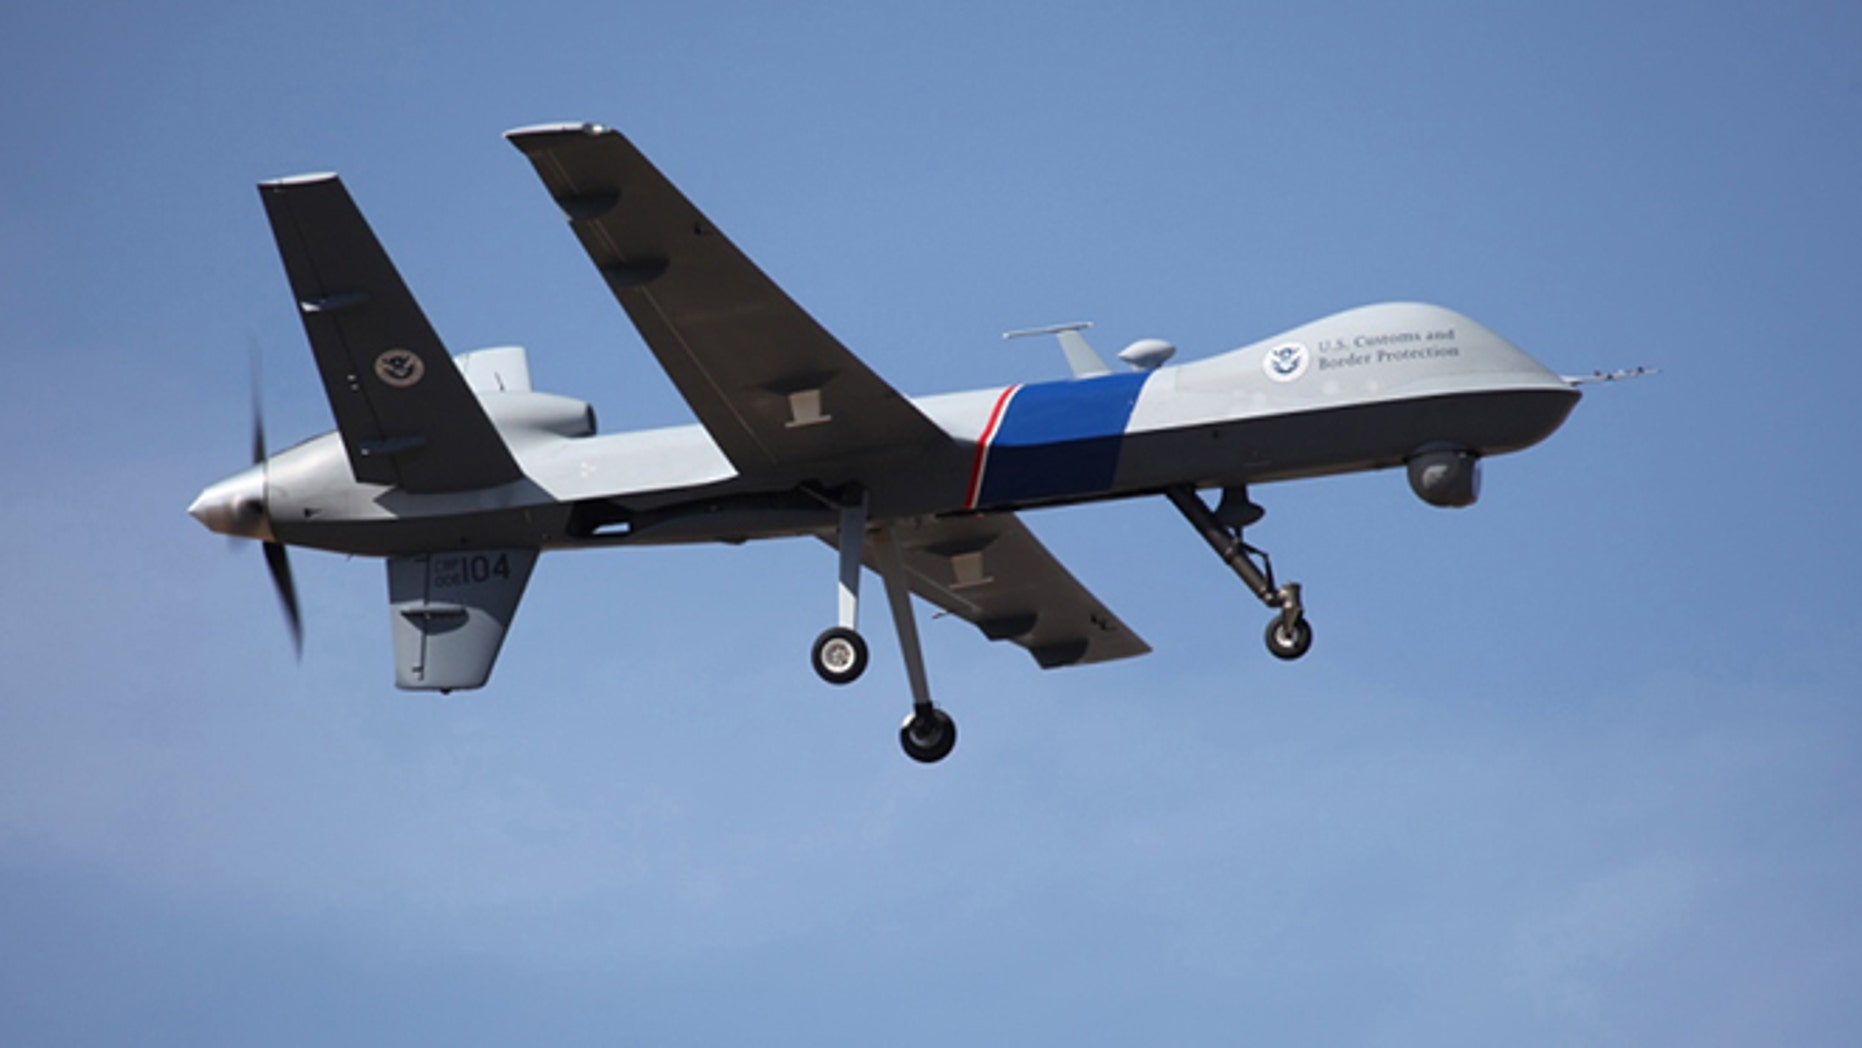 This undated photo provided by U.S. Customs and Border Protection shows an unmanned drone used to patrol the U.S.-Canadian border.